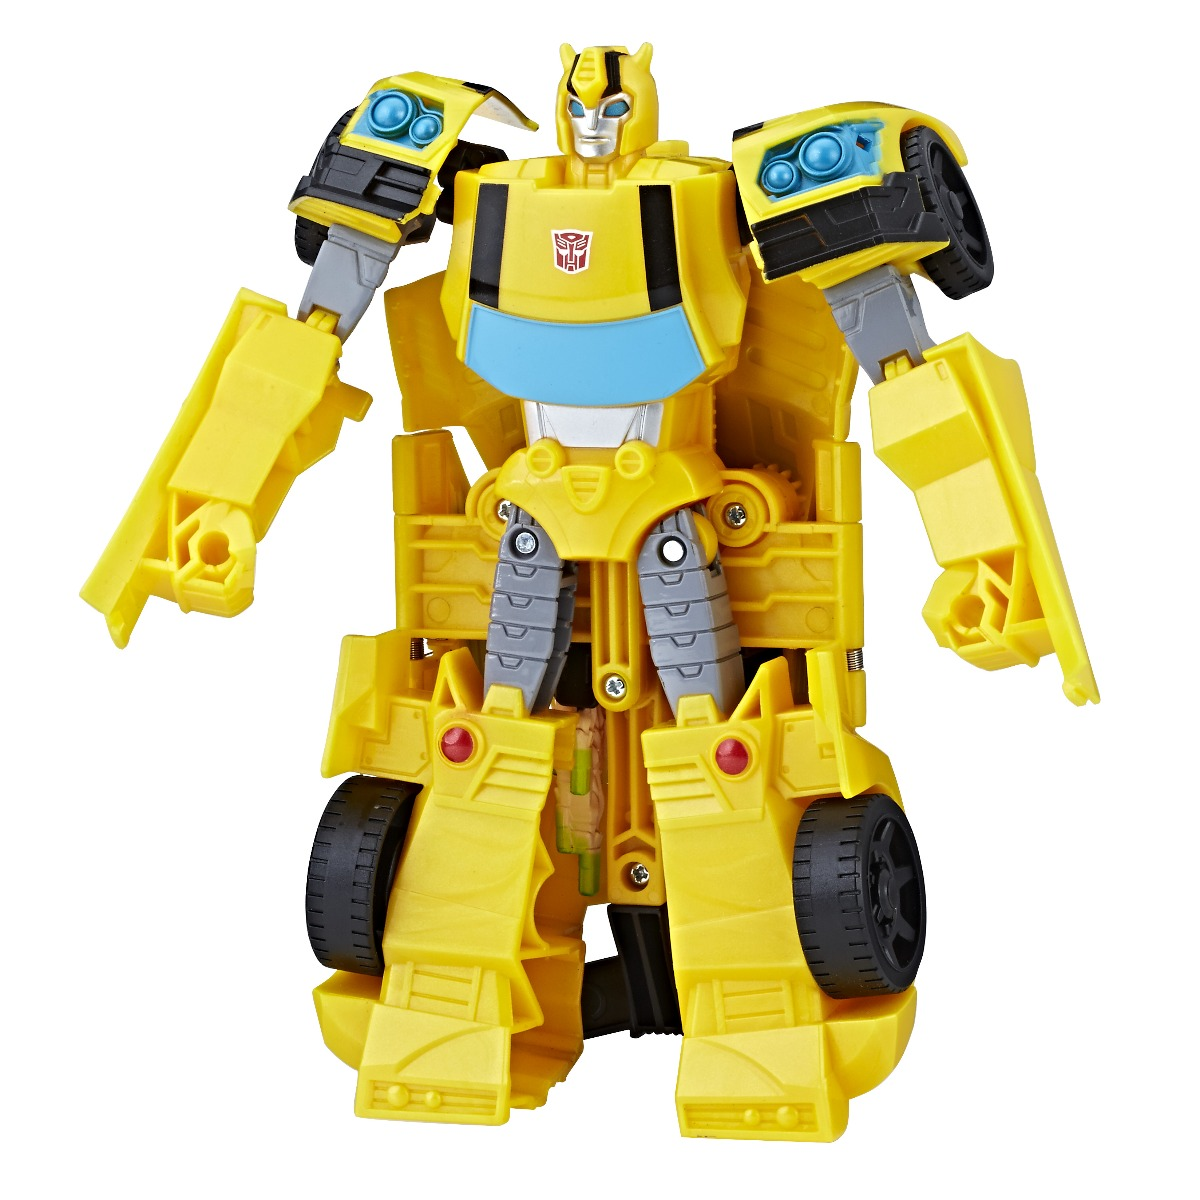 Figurina Transformers Cyberverse Action Attackers Ultra Bumblebee